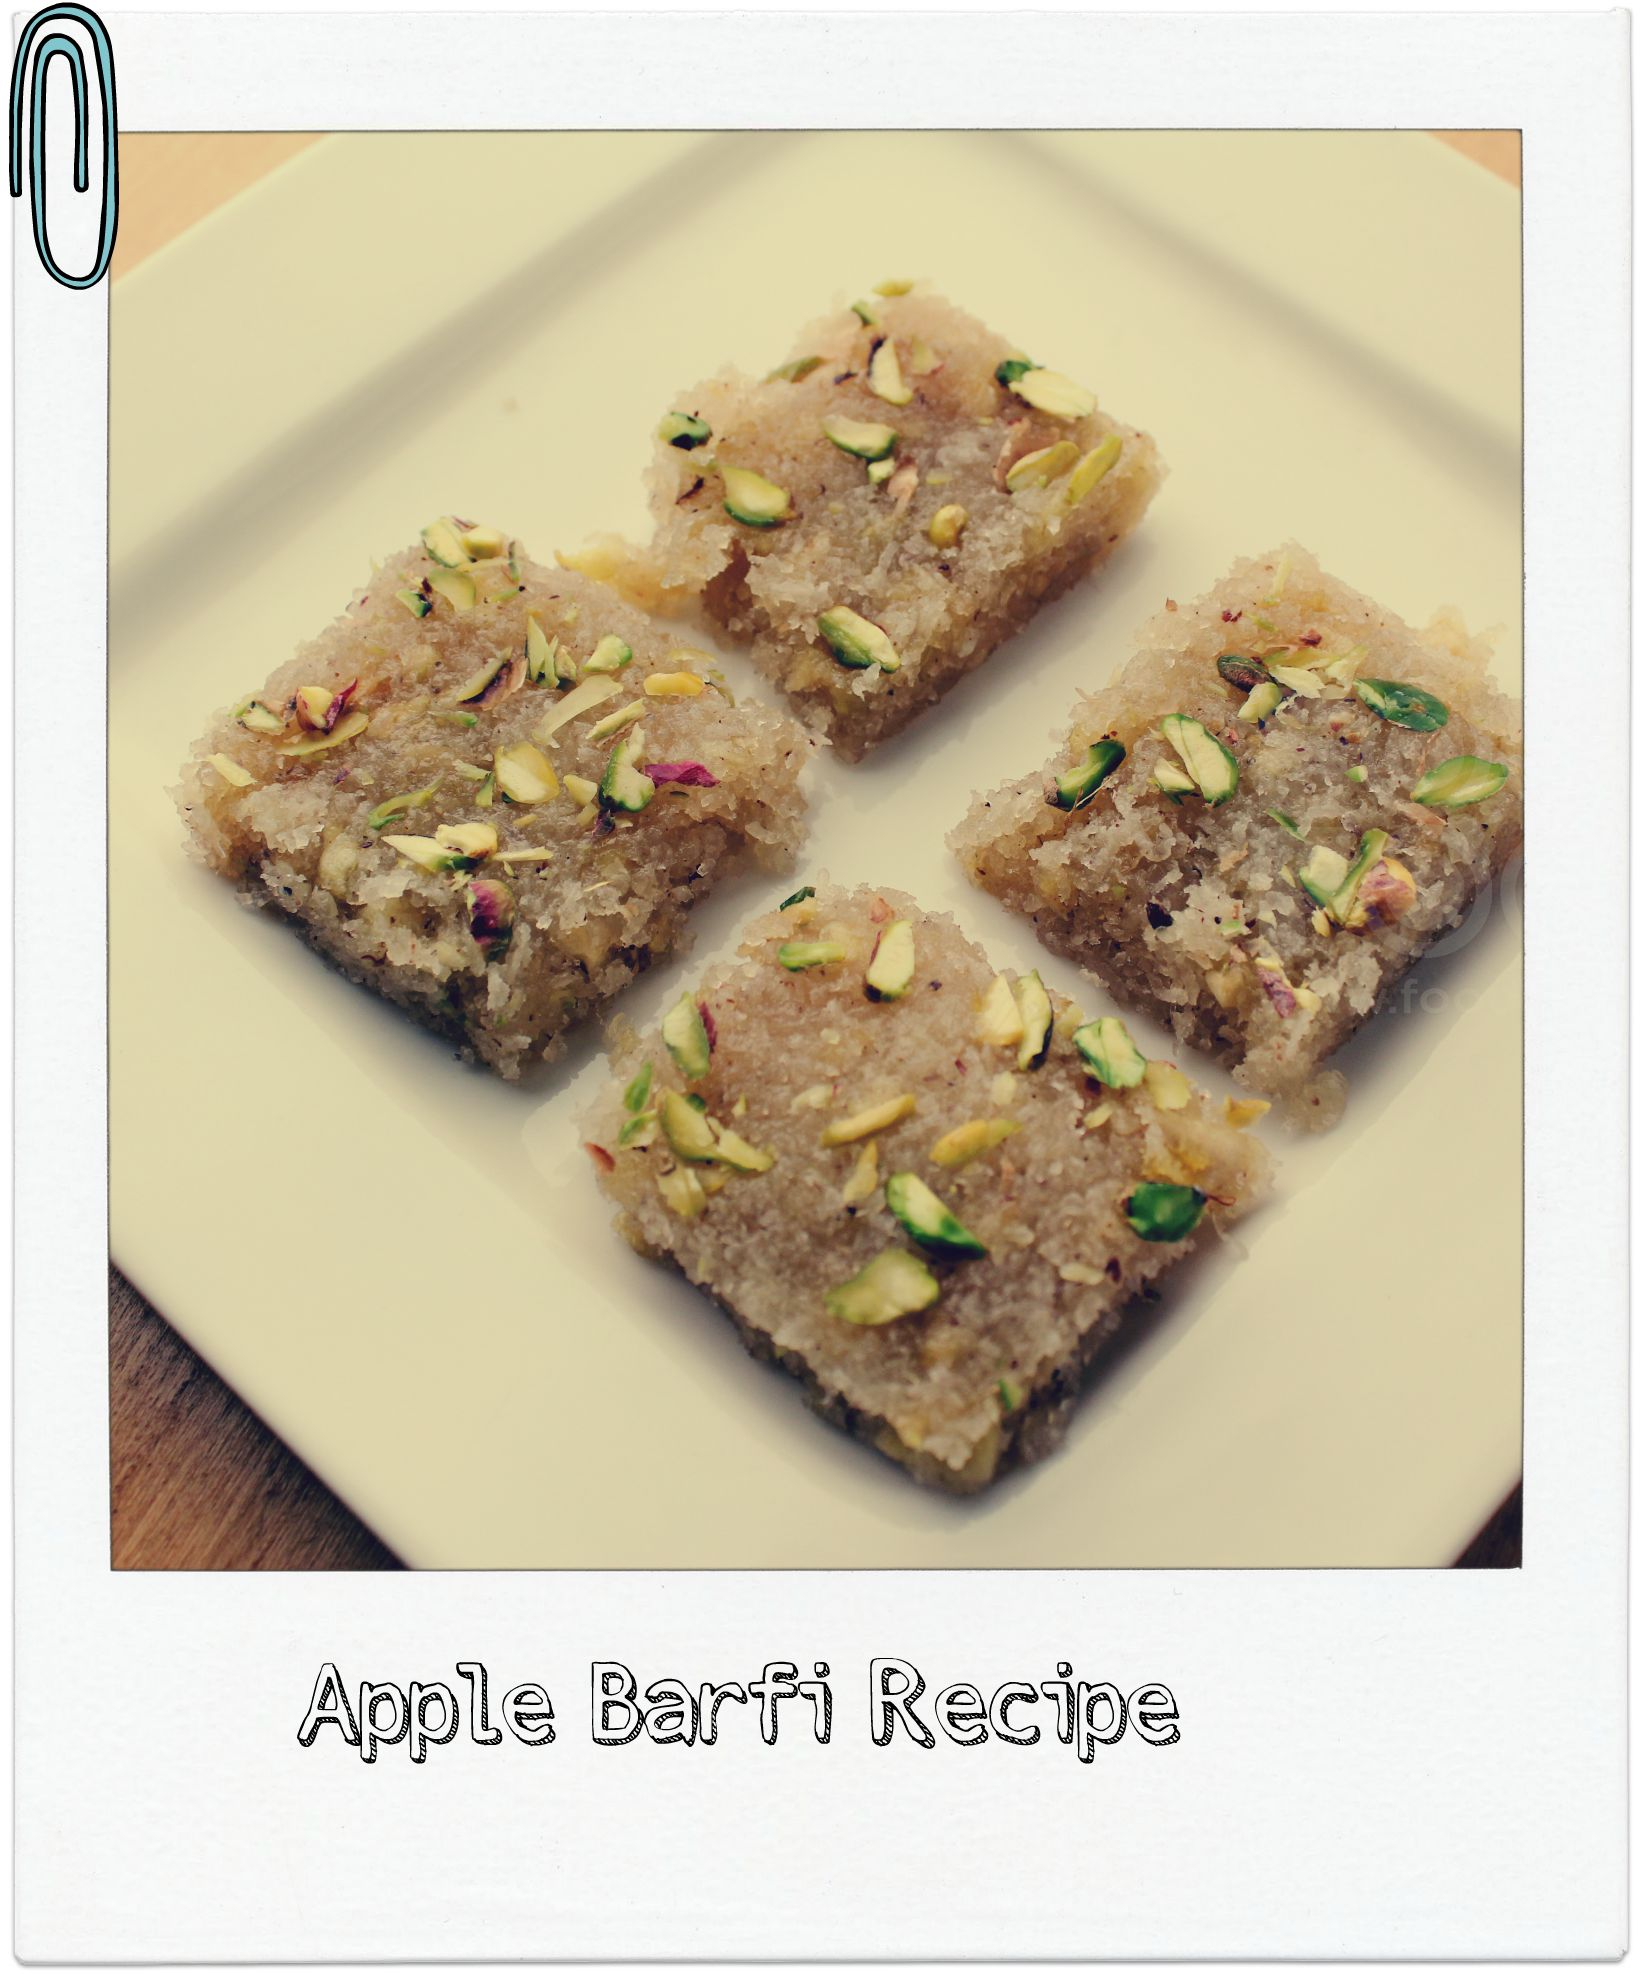 Apple Barfi recipe